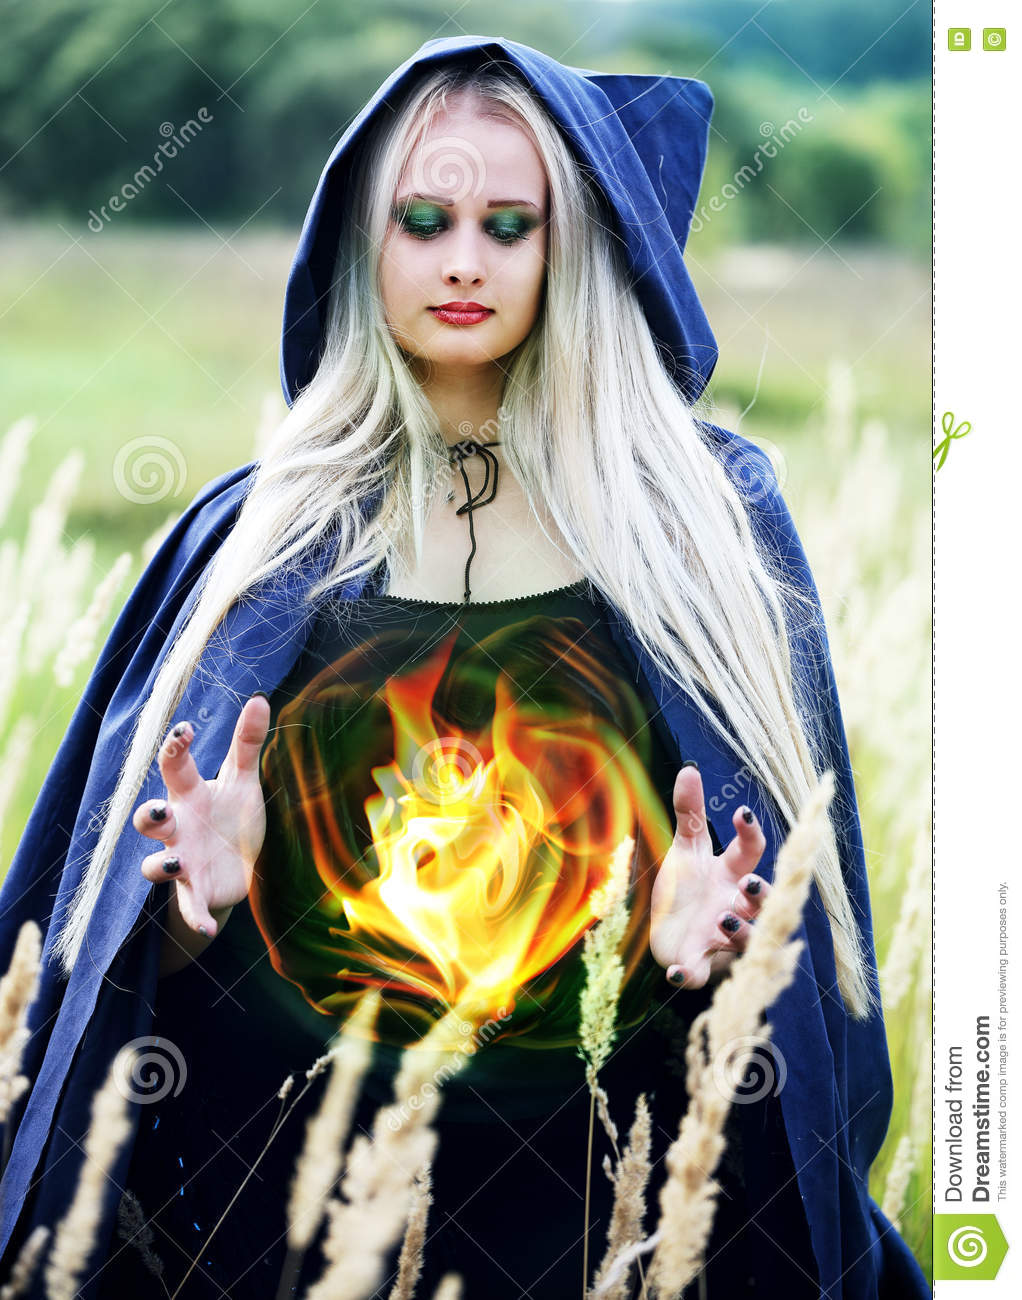 Woman holding a fireball stock photo. Image of caucasian - 75898268 for Holding Fireball  545xkb